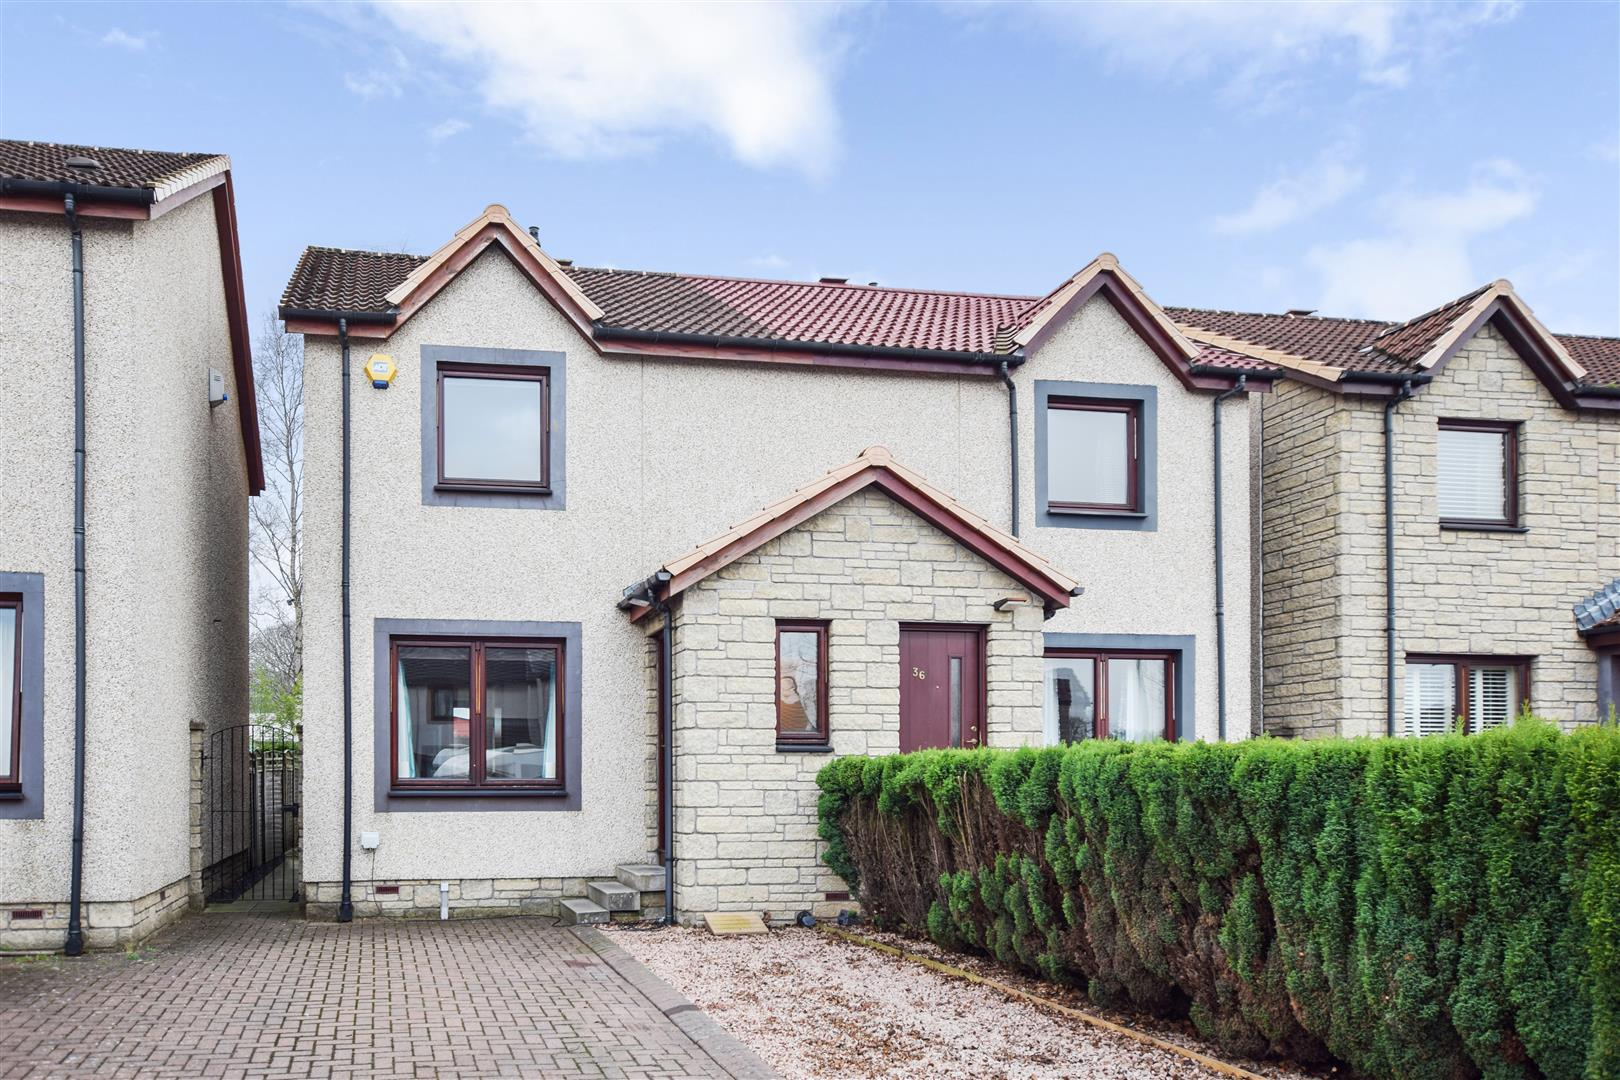 37, South Inch Park, Perth, Perthshire, PH2 8BU, UK